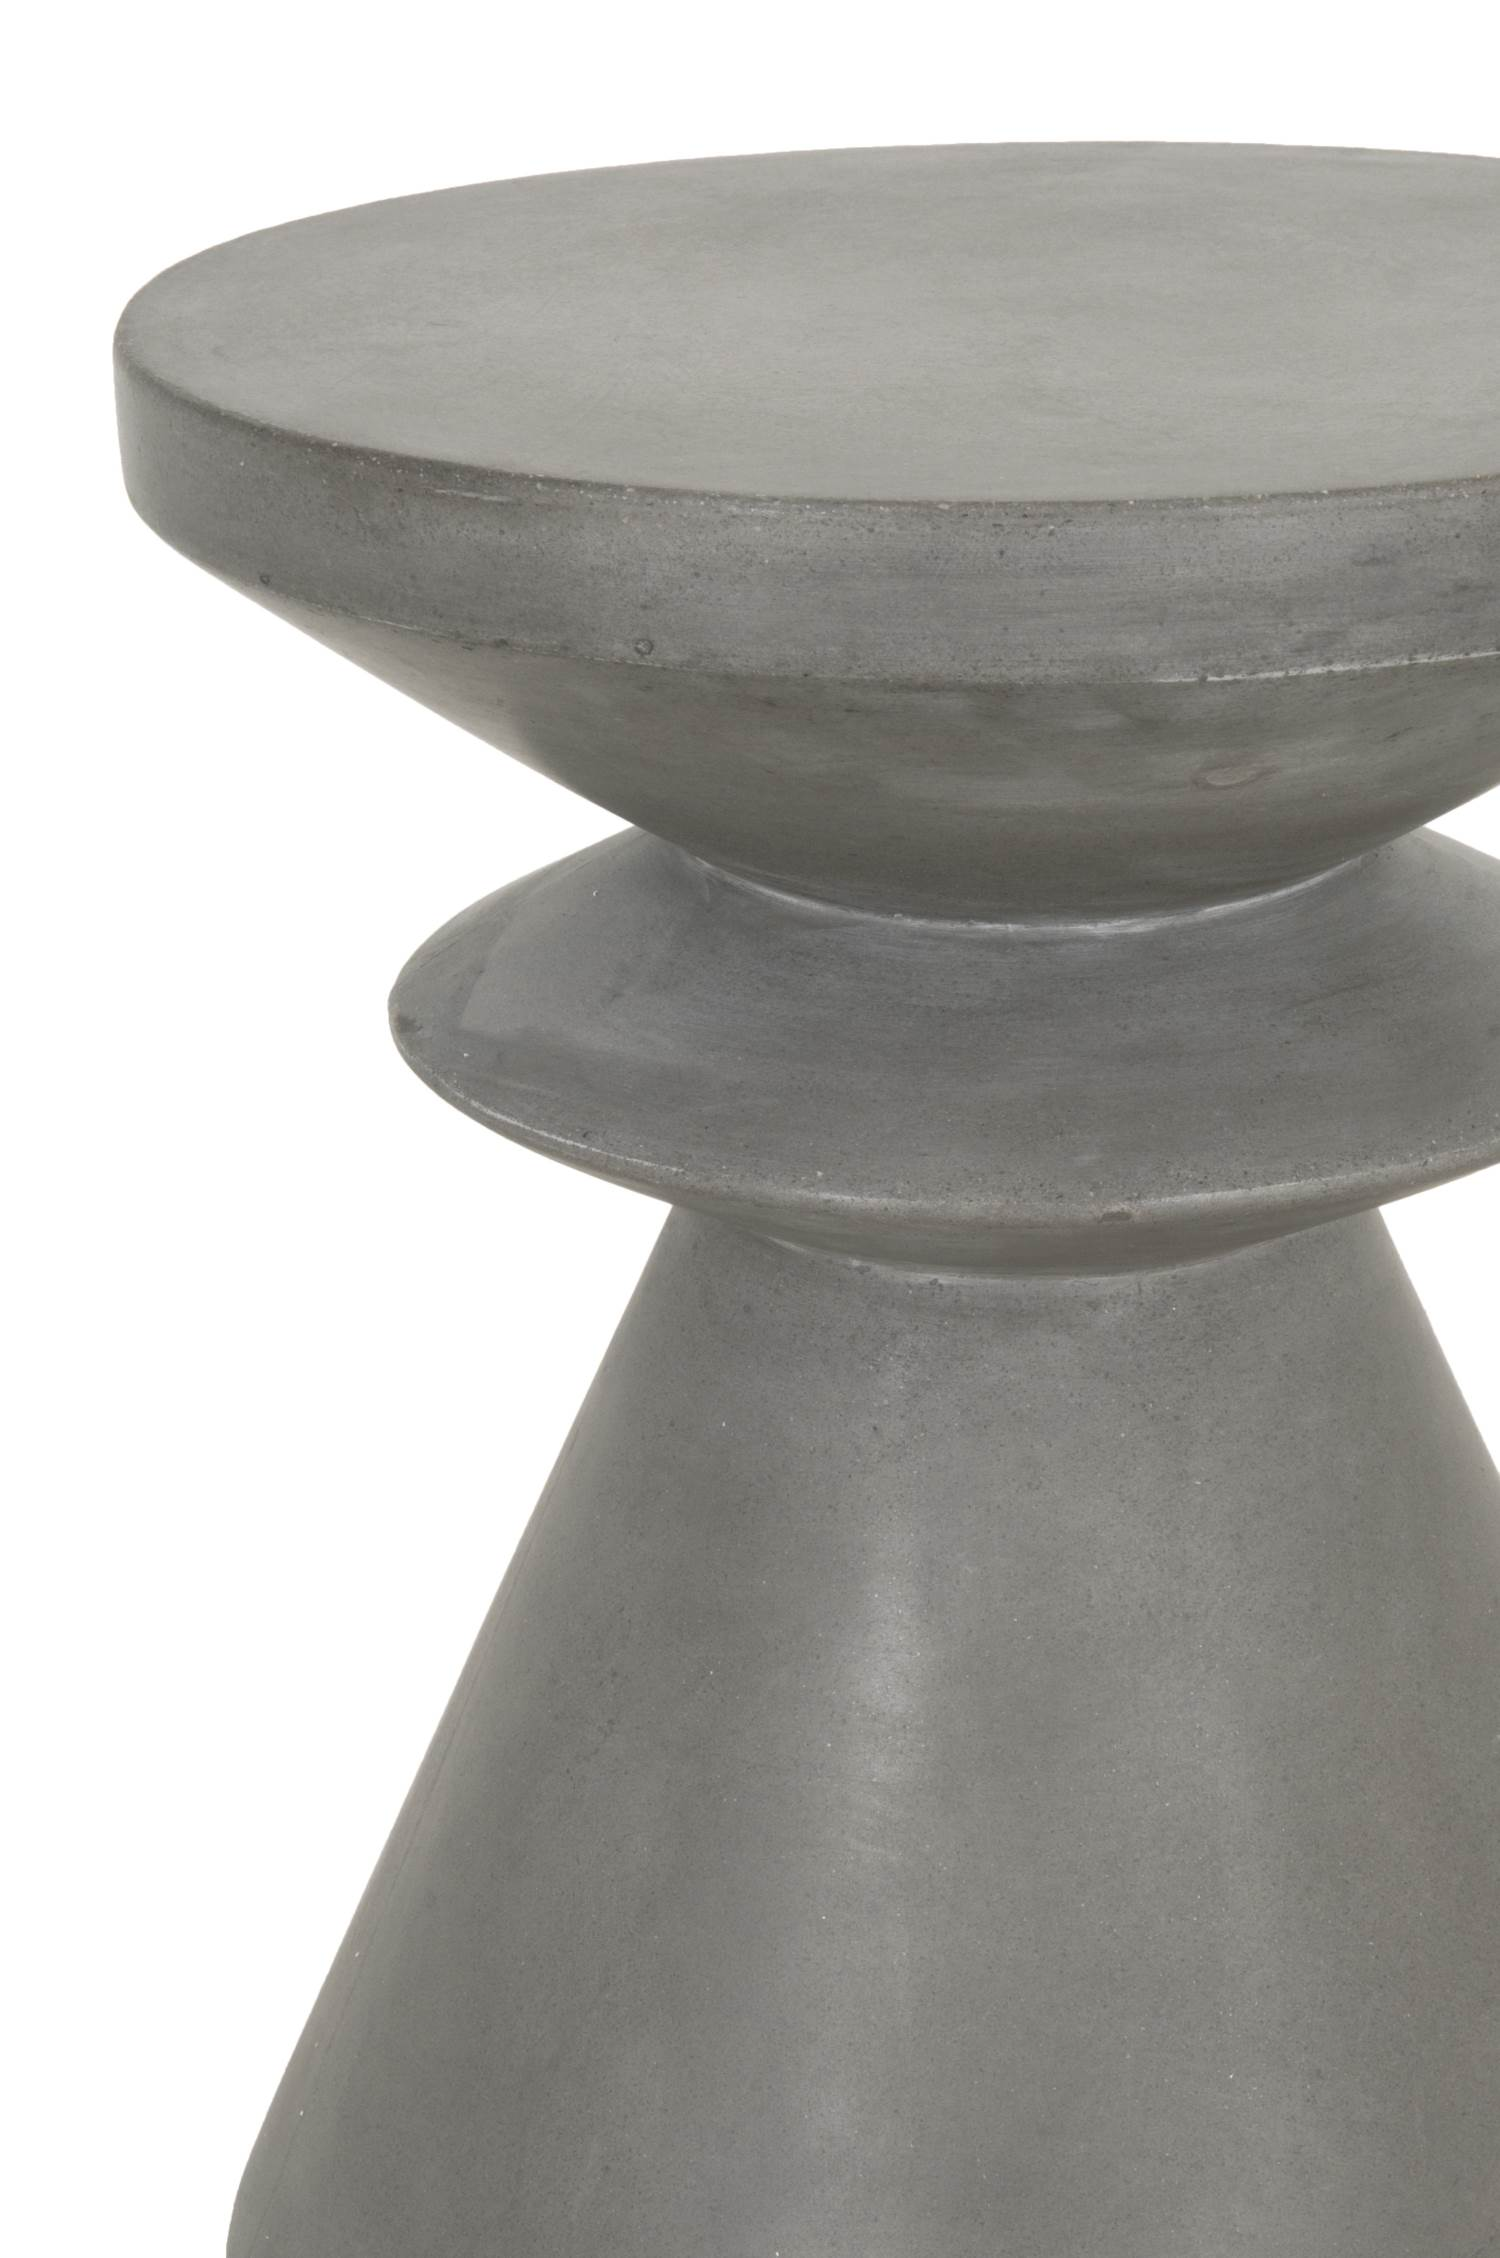 pawn accent table end slate grey concrete detail outdoor cbm ashley furniture and chairs big lots couches pier desk breakfast bar stools pottery barn white coffee bbq grills round